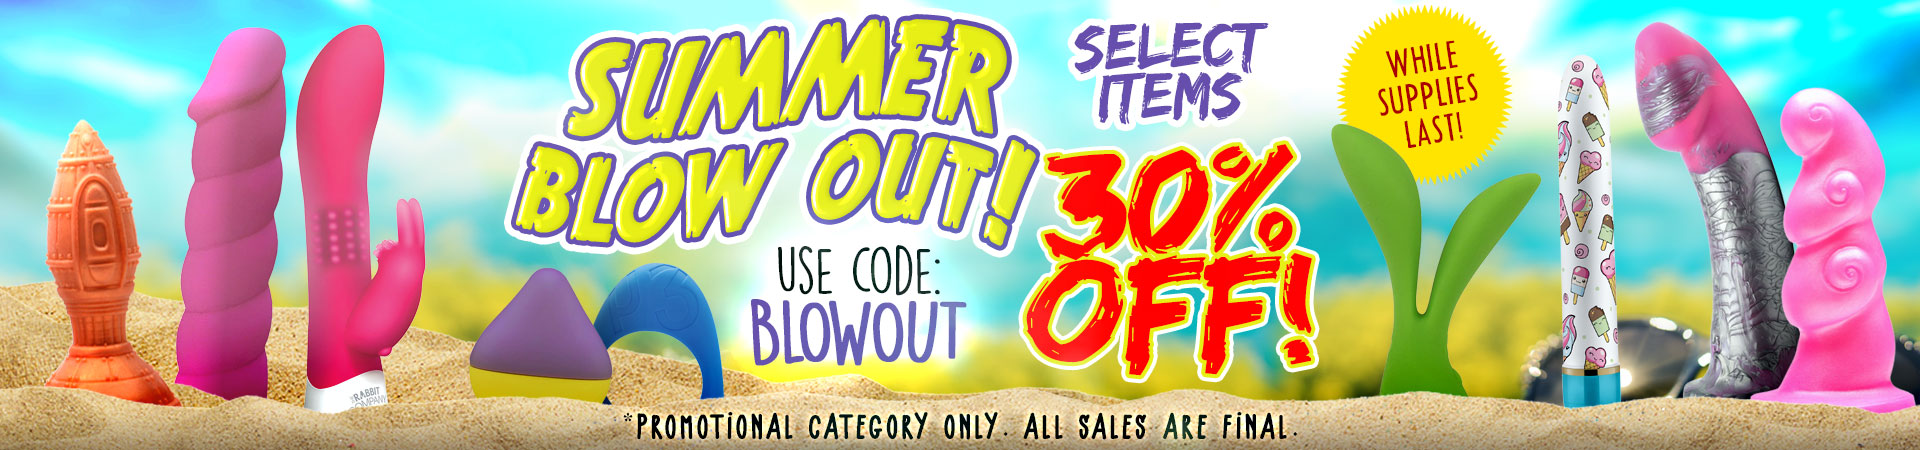 Summer Blowout Sale - Save 30% On Select Items! -Our Biggest Ever! Use Promo Code: BLOWOUT - Hurry While Supplies Last!